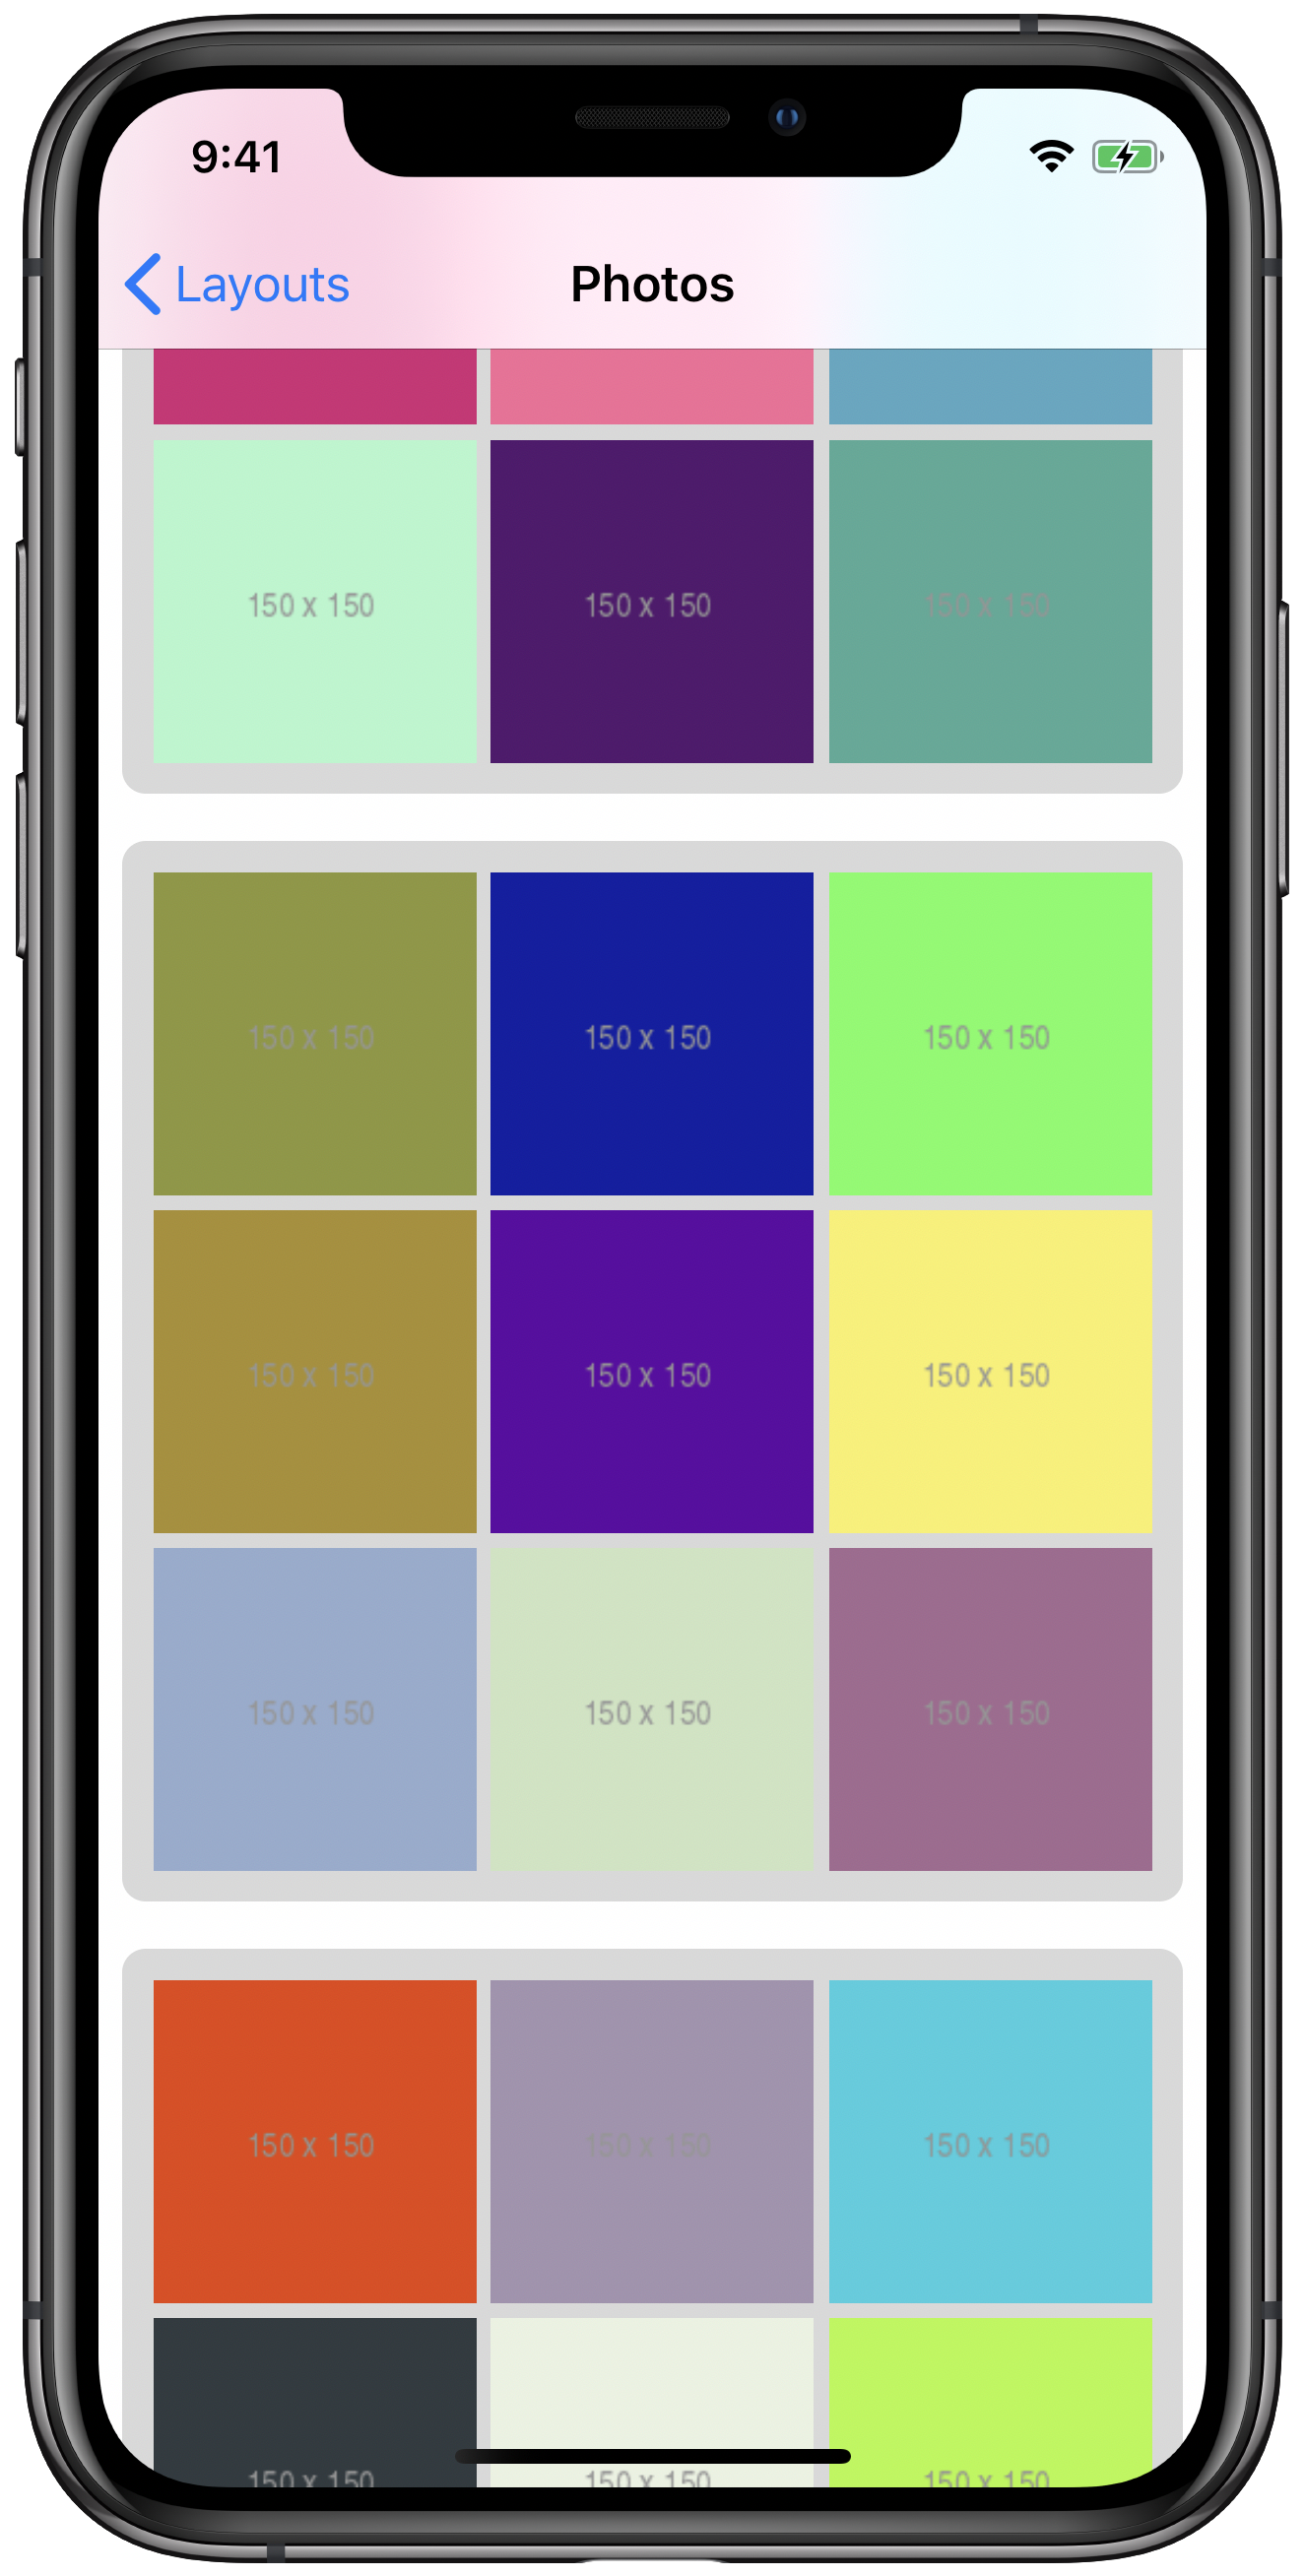 iPhone simulator screenshot showing a compositional layout with background decoration items